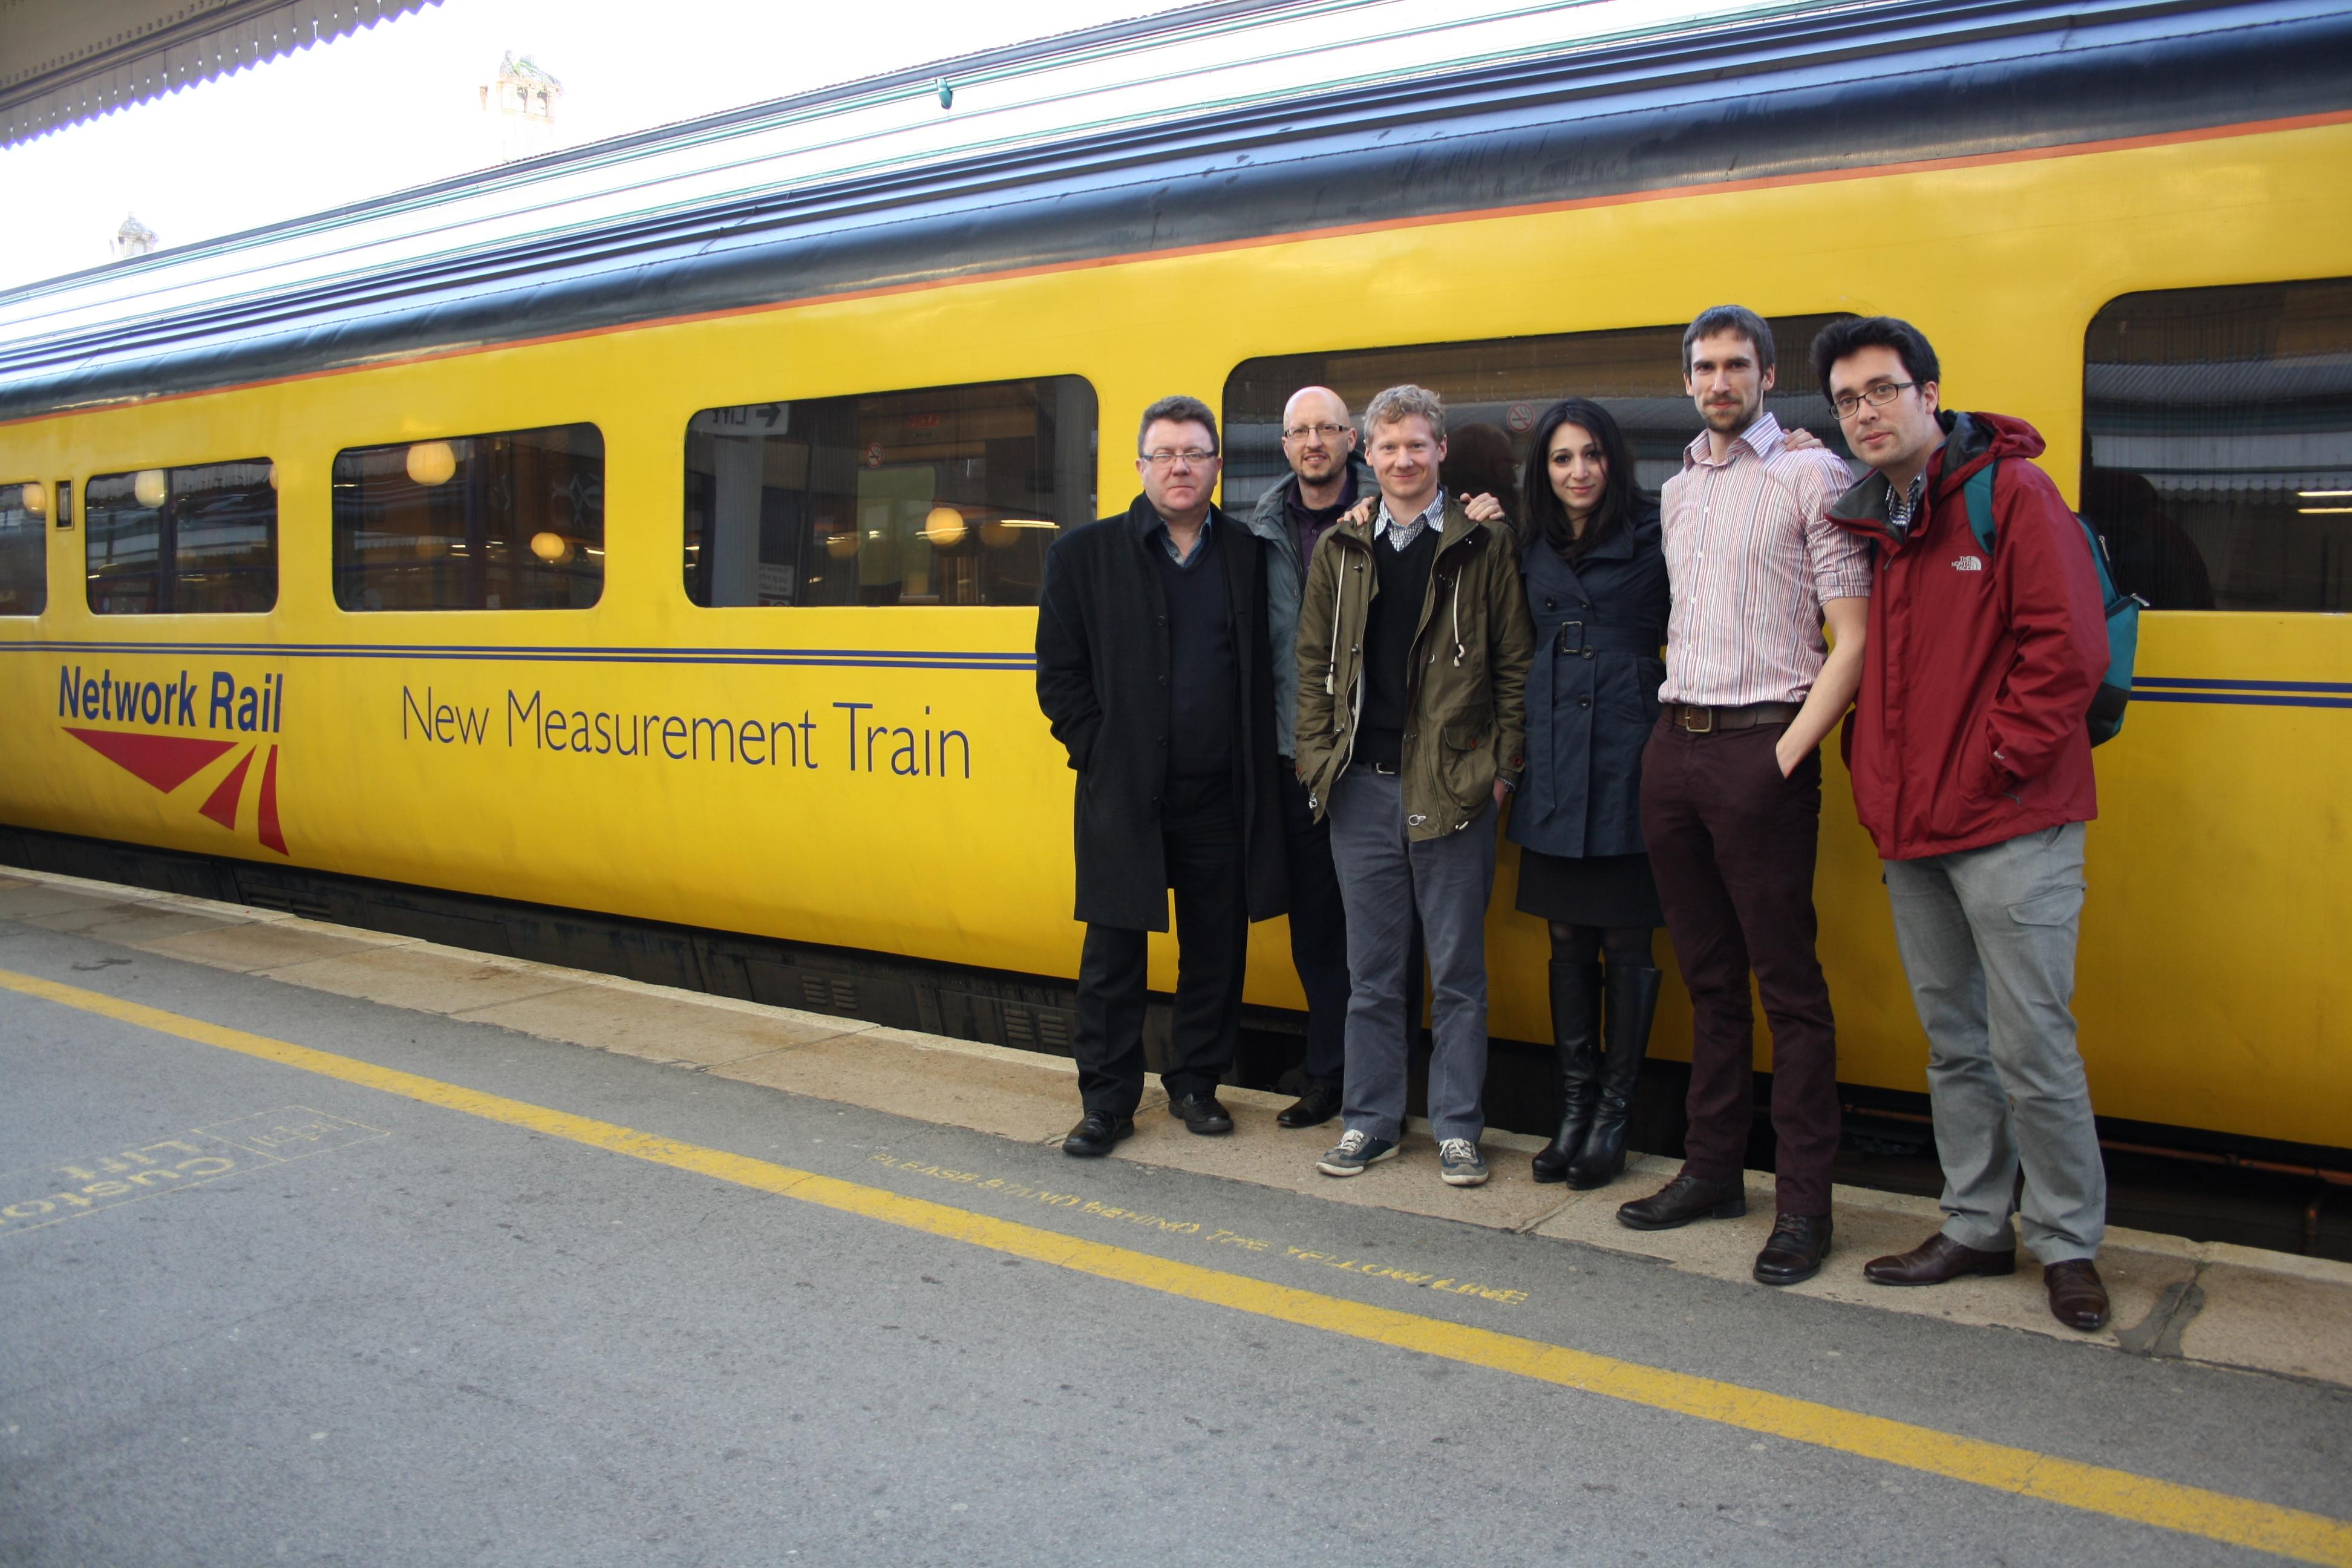 CSIC invited to ride the 'flying banana'